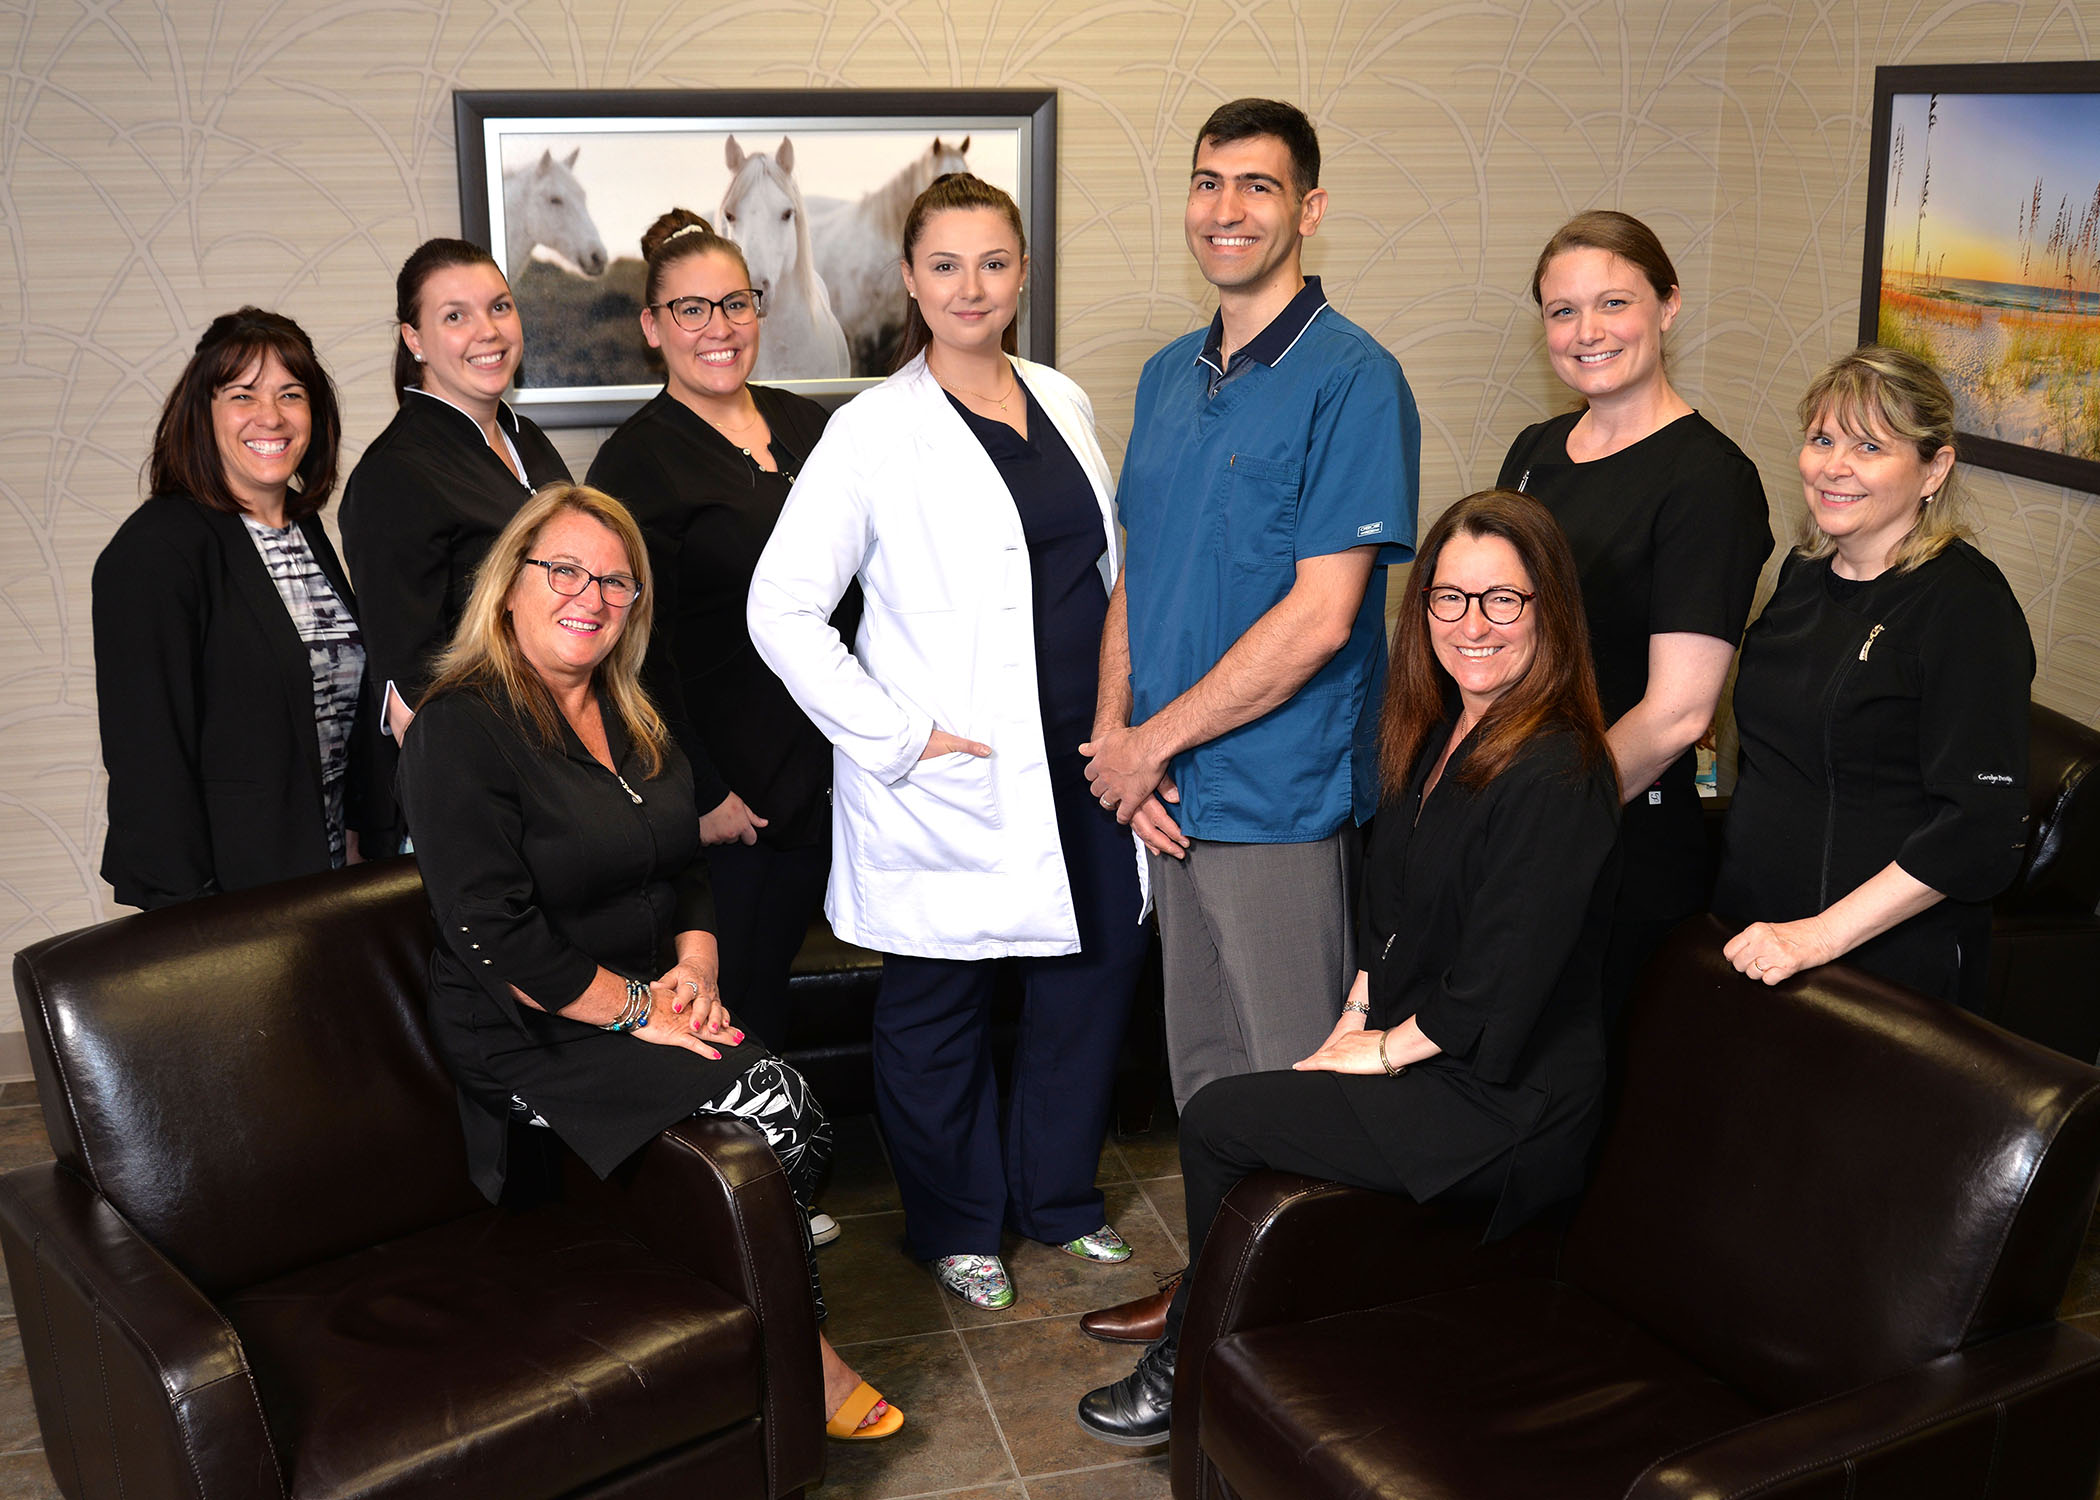 https://www.dentistedrummondville.com/wp-content/uploads/2015/11/Clinique-dentaire-des-promenades-equipe.jpg